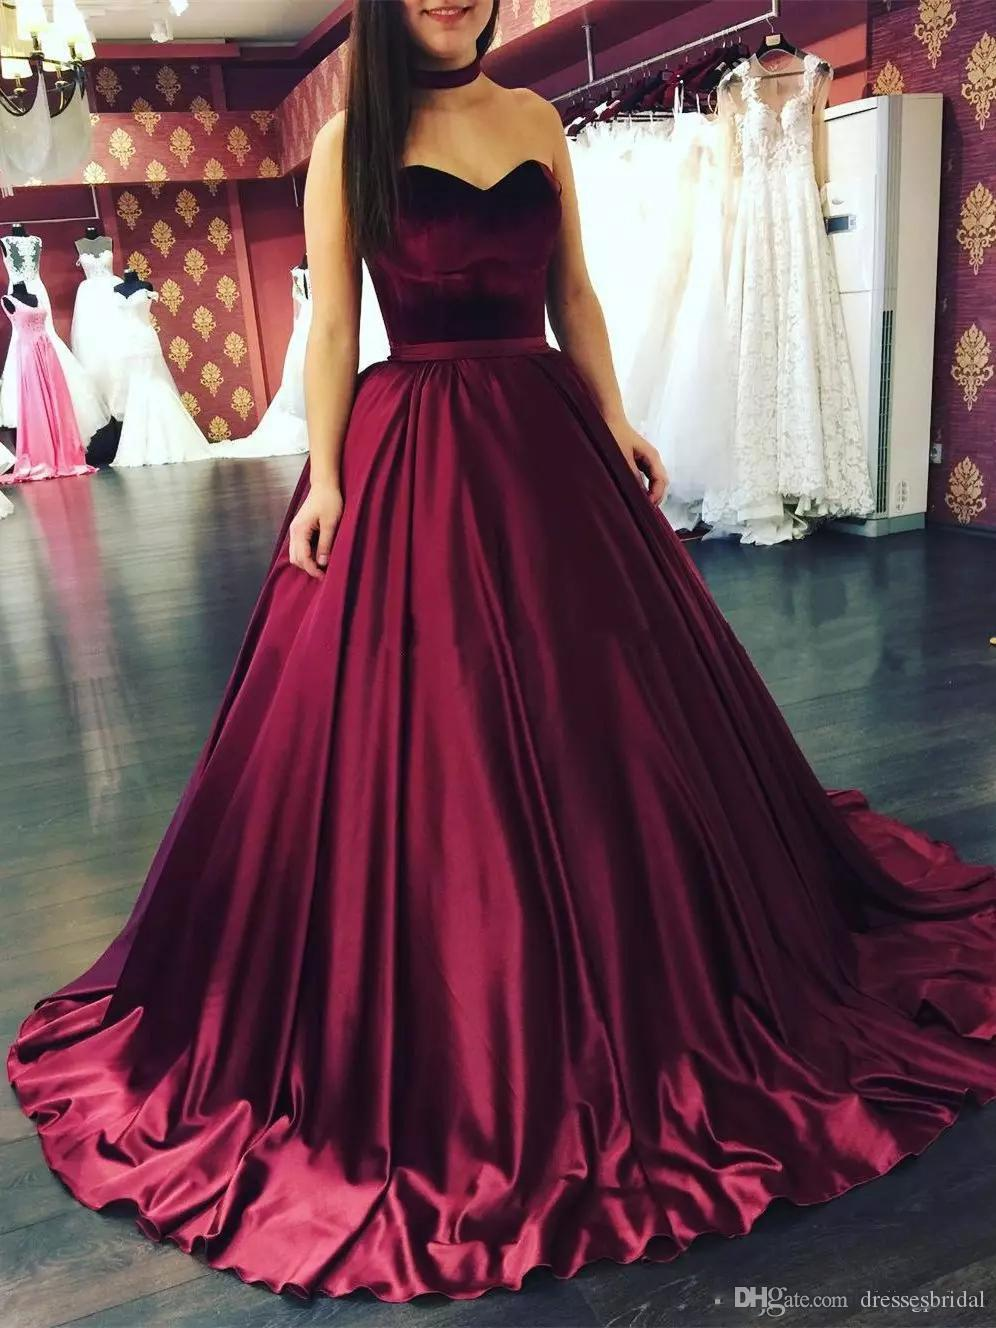 ba696f46 2019 Sweetheart Ball Gown Prom Dresses Satin Lace Up Back Chapel Train  Formal Evening Dresses Gowns Birthday Quinceanera Dresses Western Prom  Dresses Xscape ...